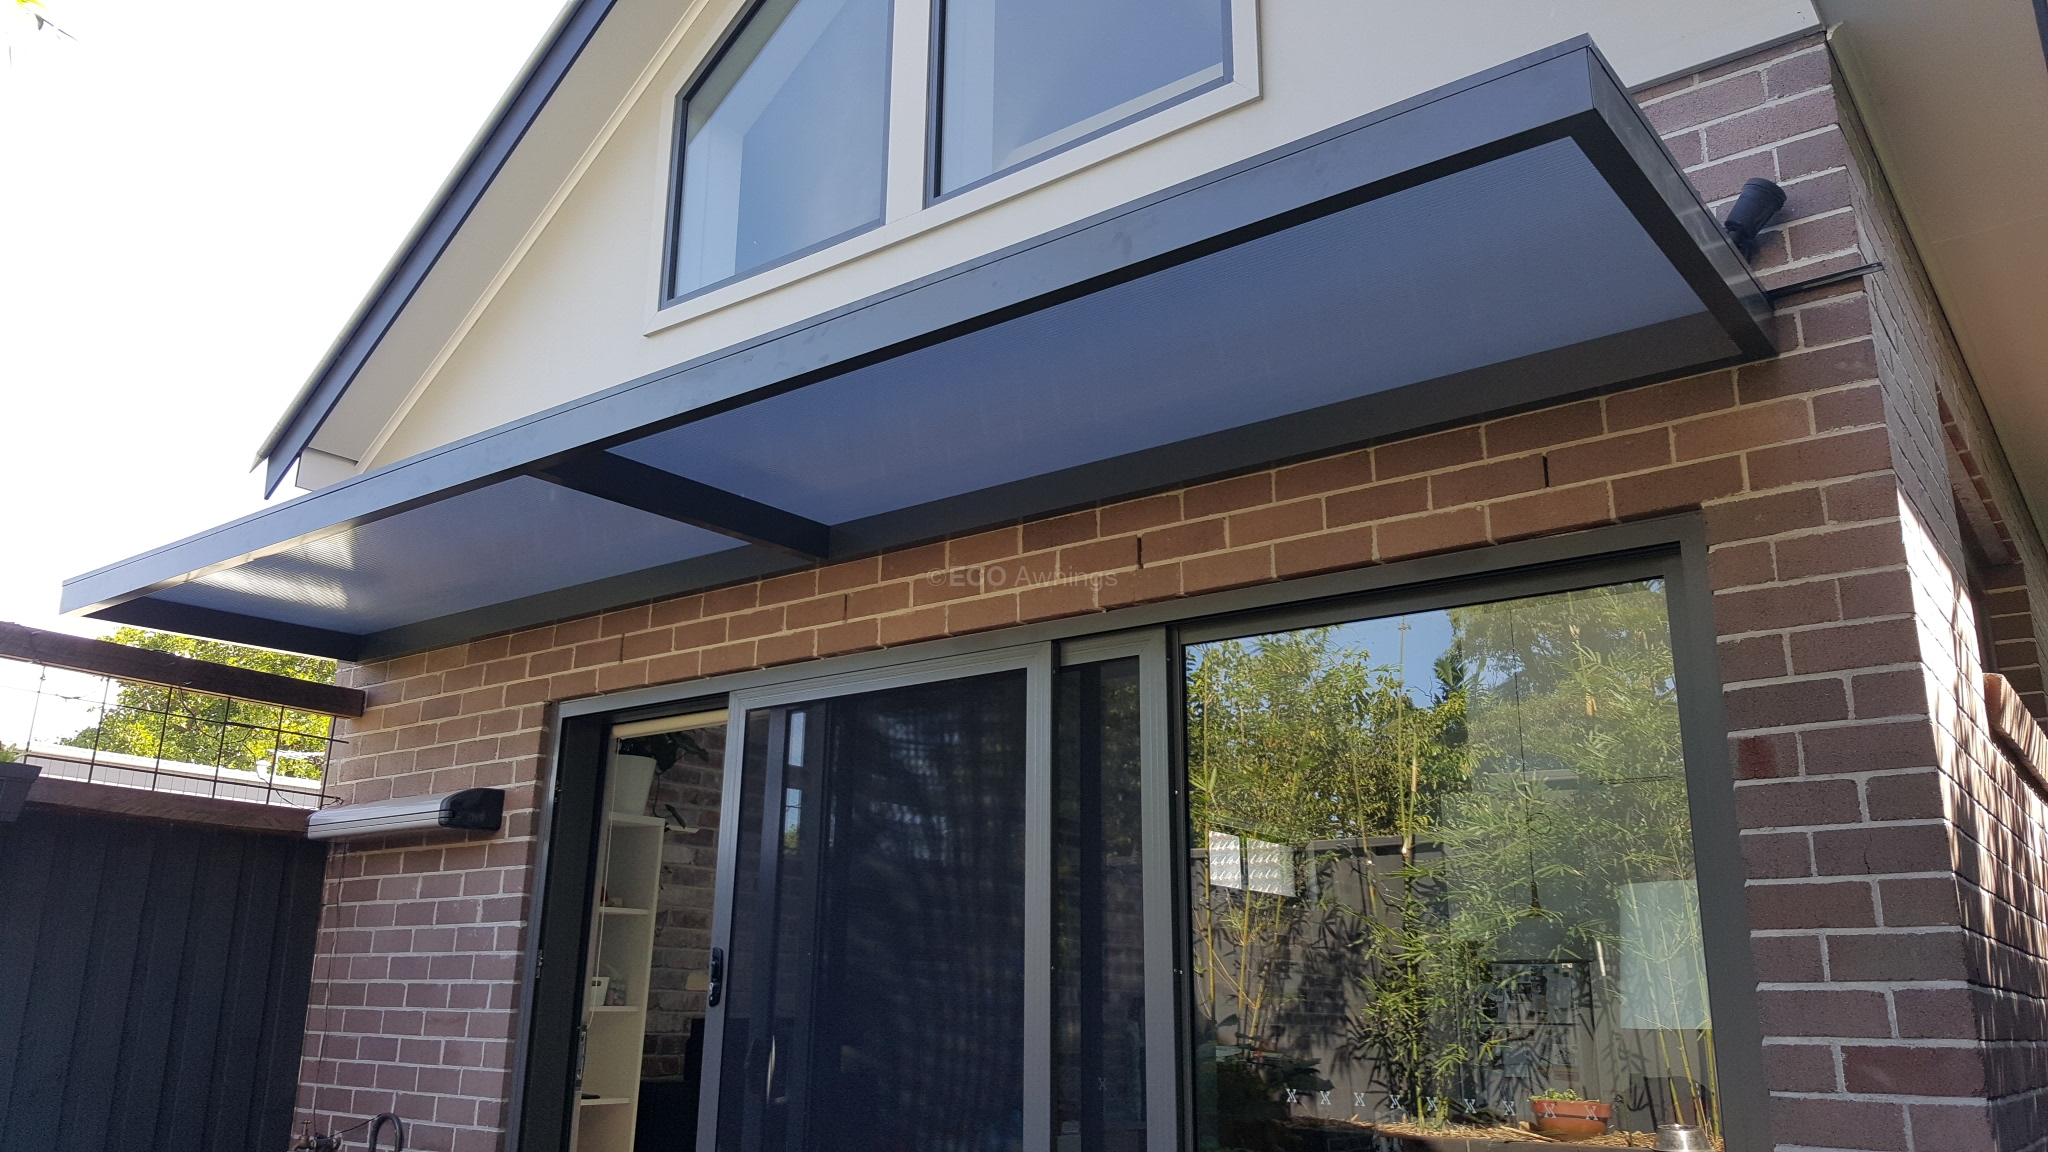 Slimline Awnings Over Sliding Door Eco Awnings